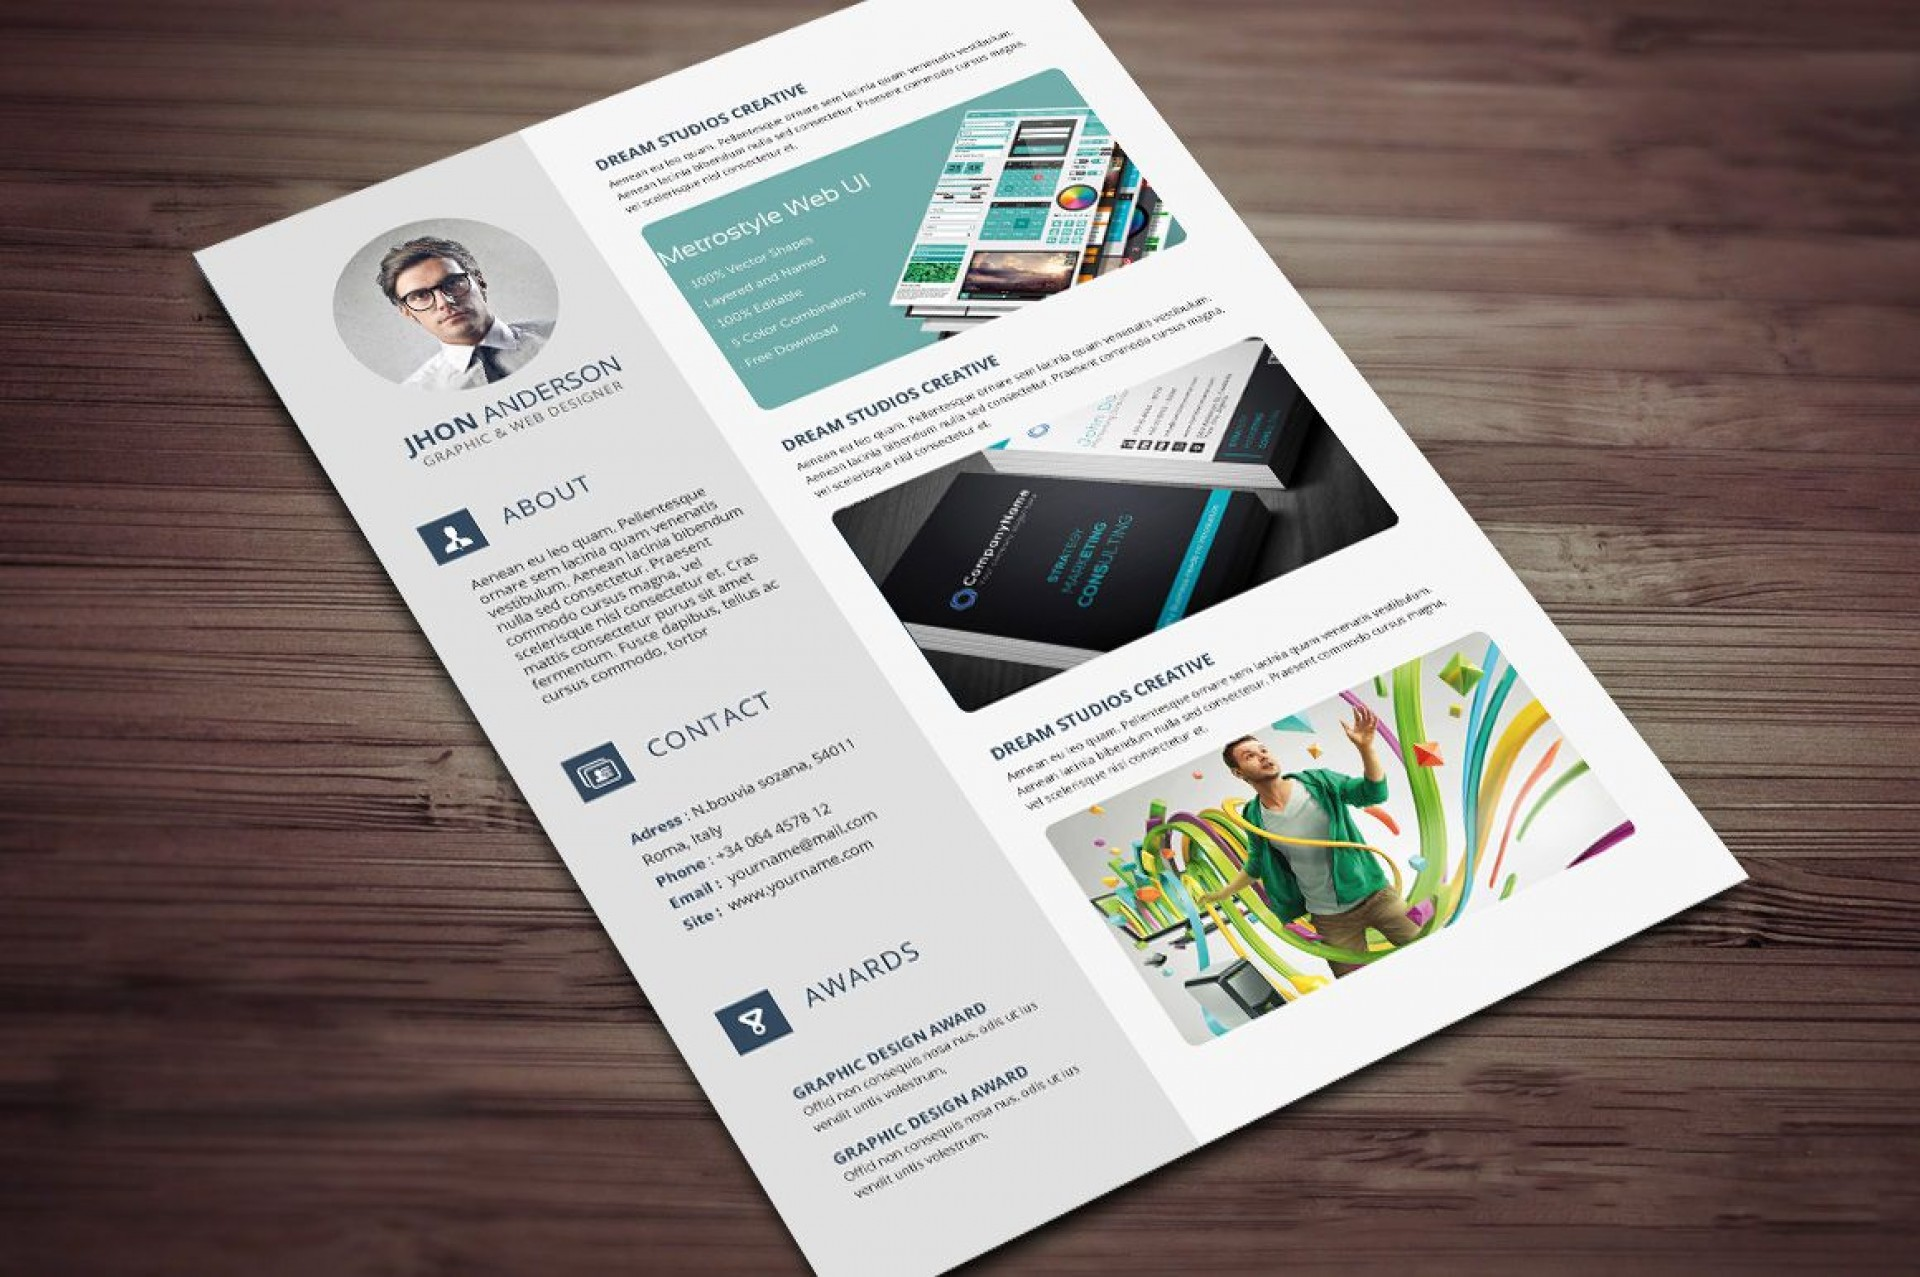 008 Stunning Microsoft Word Portfolio Template High Def  Career Professional Free Download1920